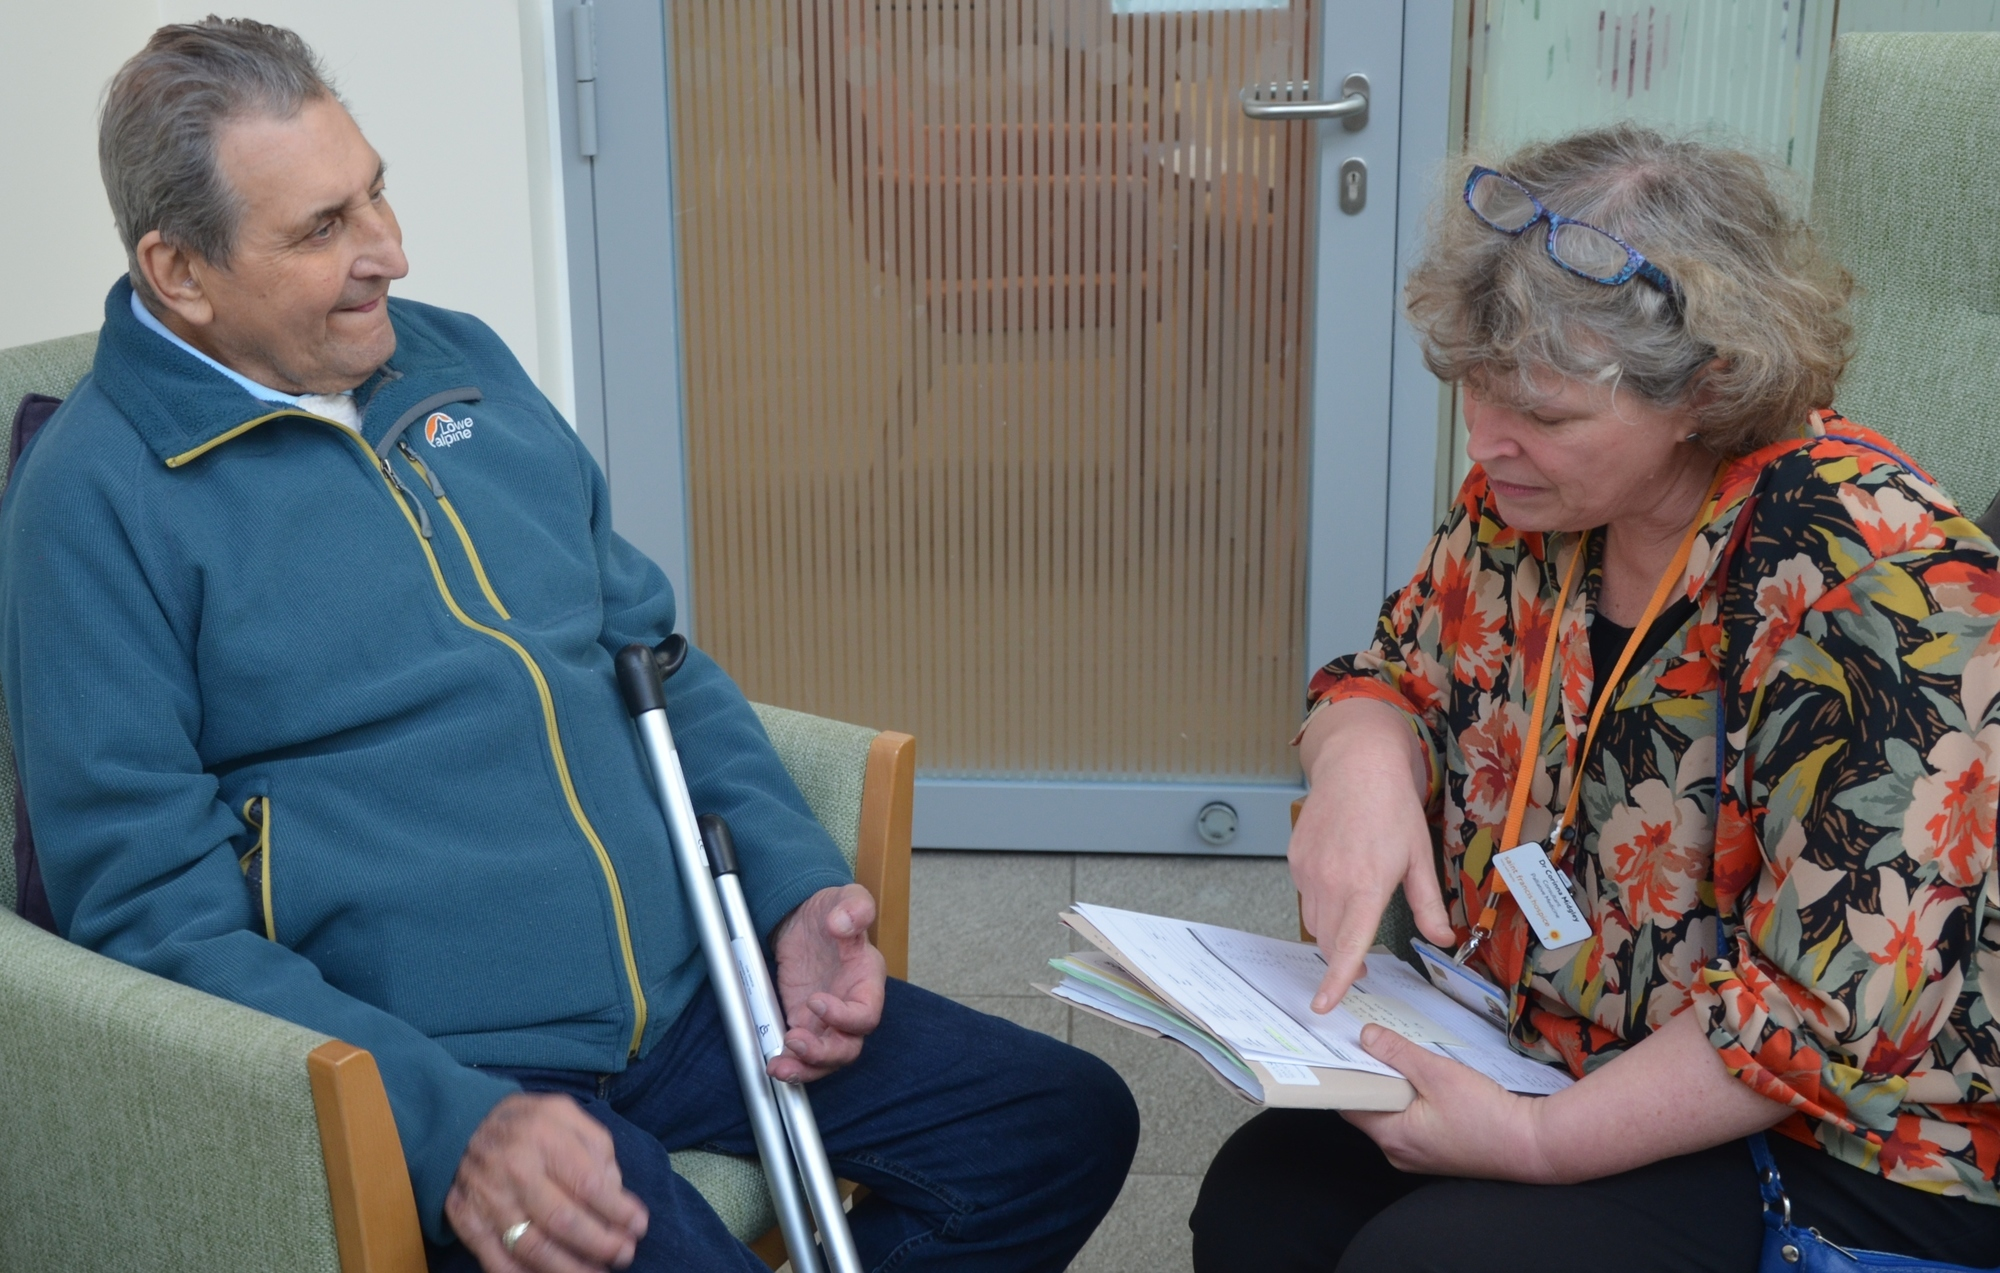 Corinna speaking to a patient at heart failure clinic